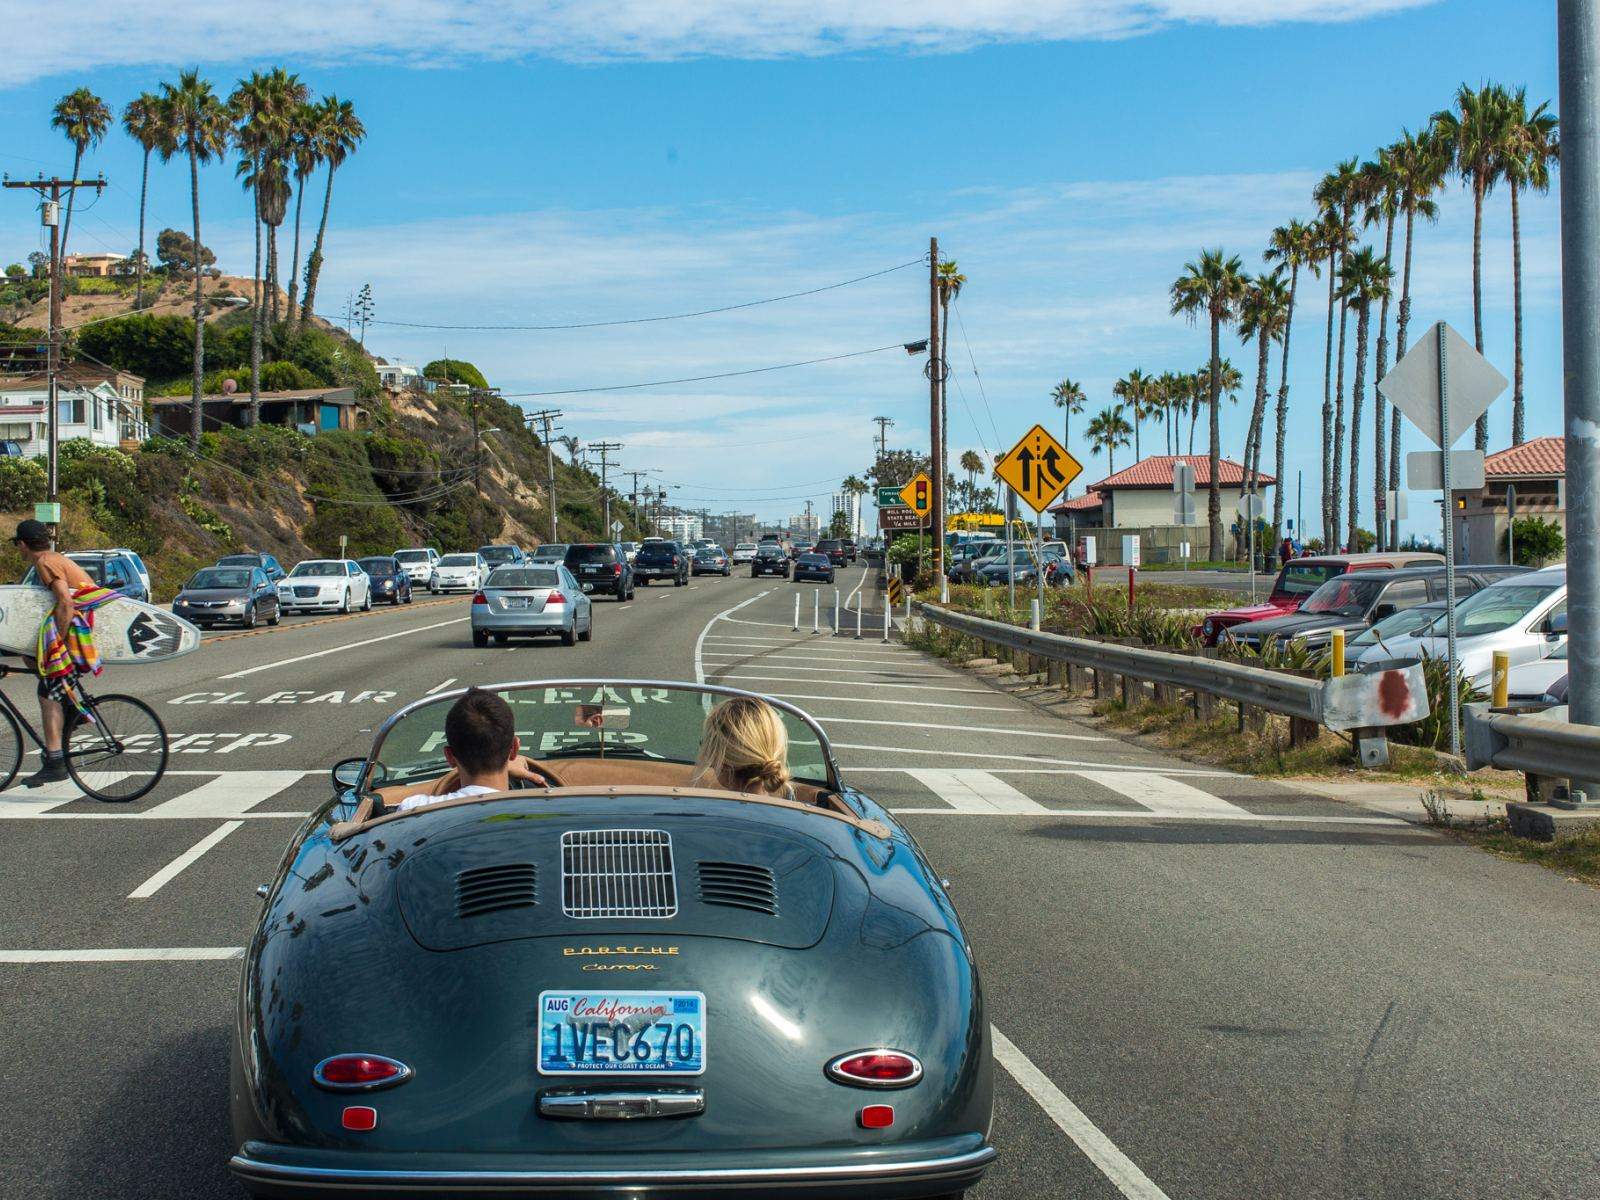 Pacific Coast Highway | Photo: Eric Demarcq, Flickr